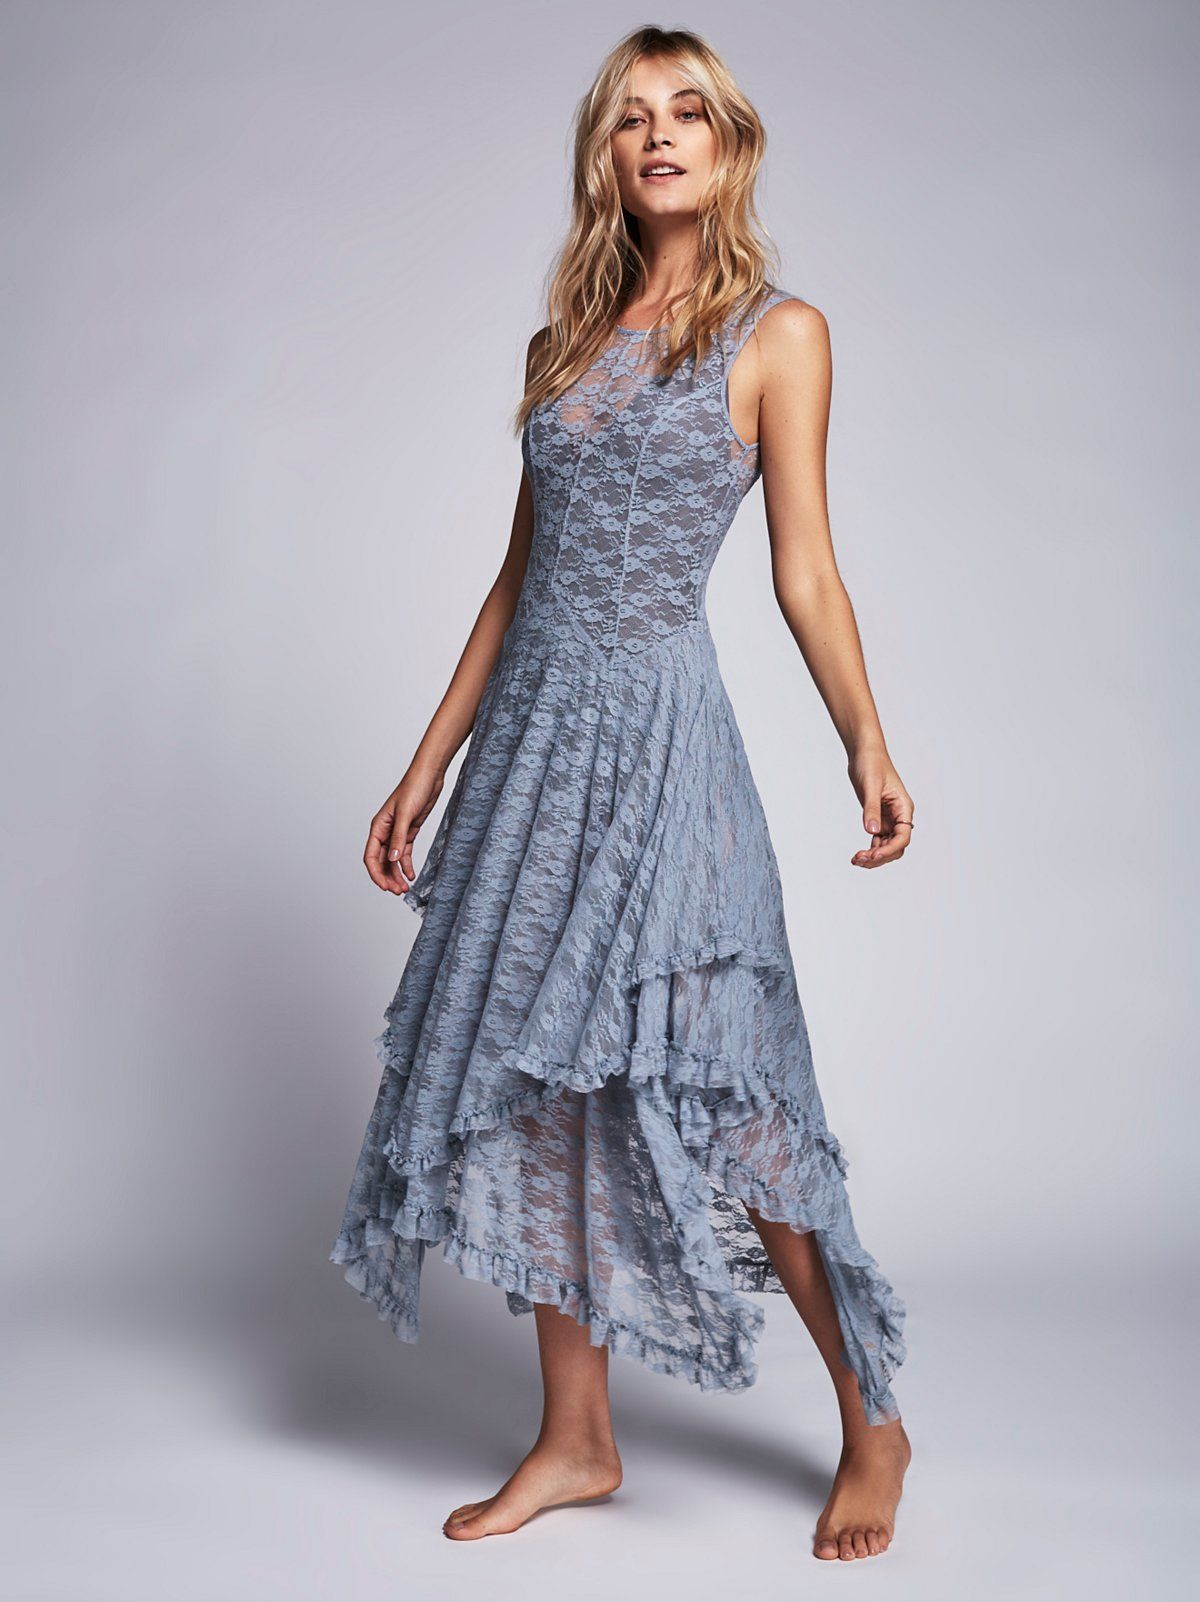 a99f47b04649 French Courtship Slip | Sheer lace slip dress with high neckline at front  and low